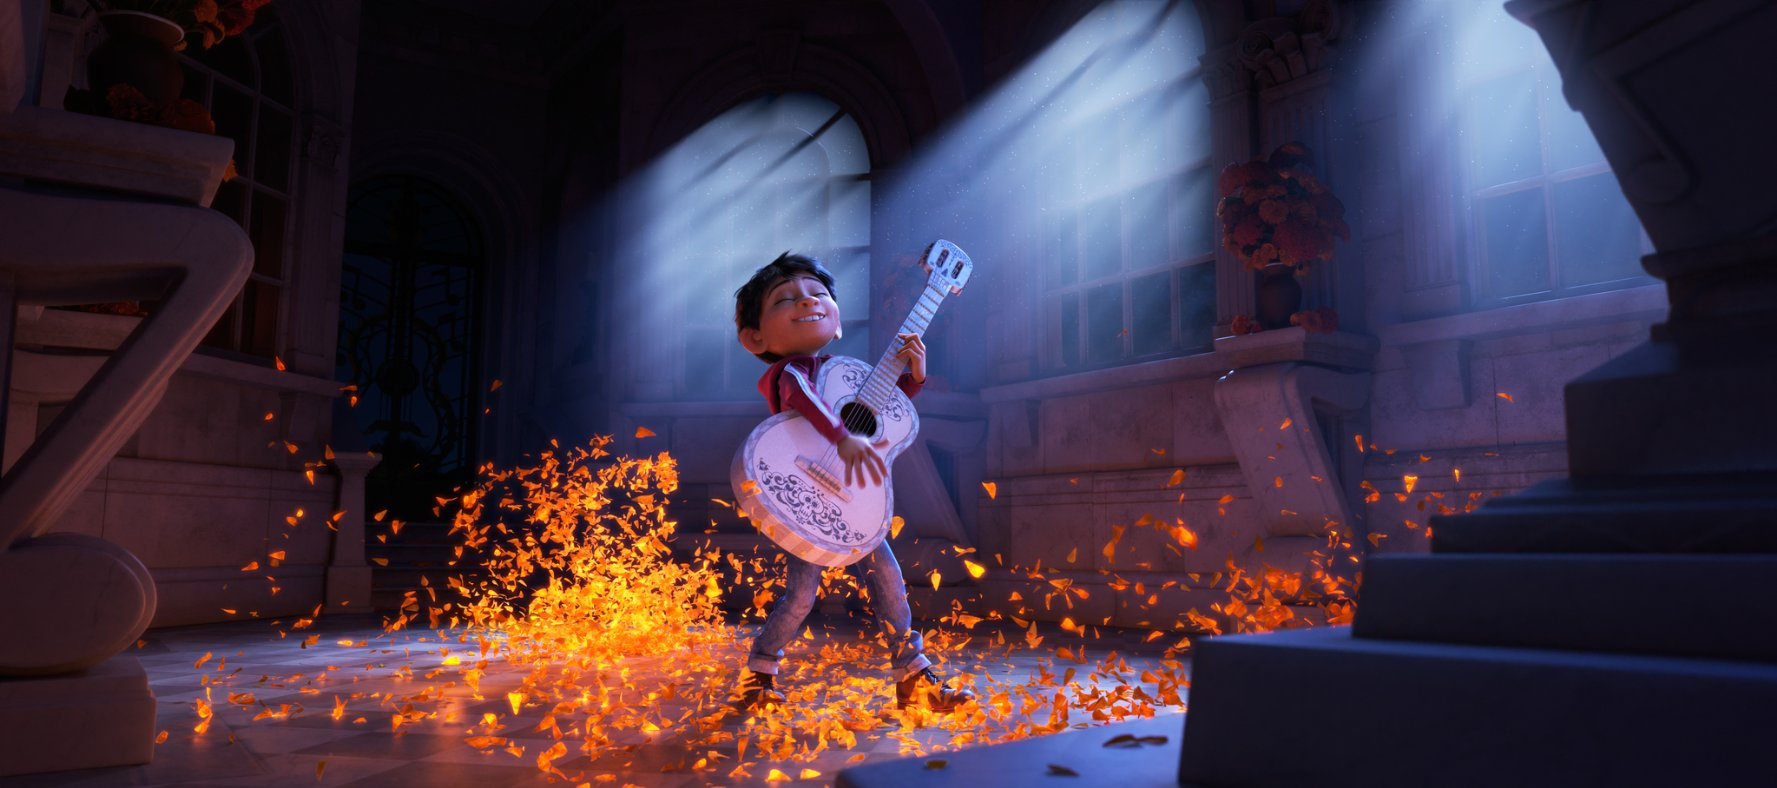 Trailer Buzz: Pixar's 'Coco,' Jackie Chan as 'The Foreigner' and the